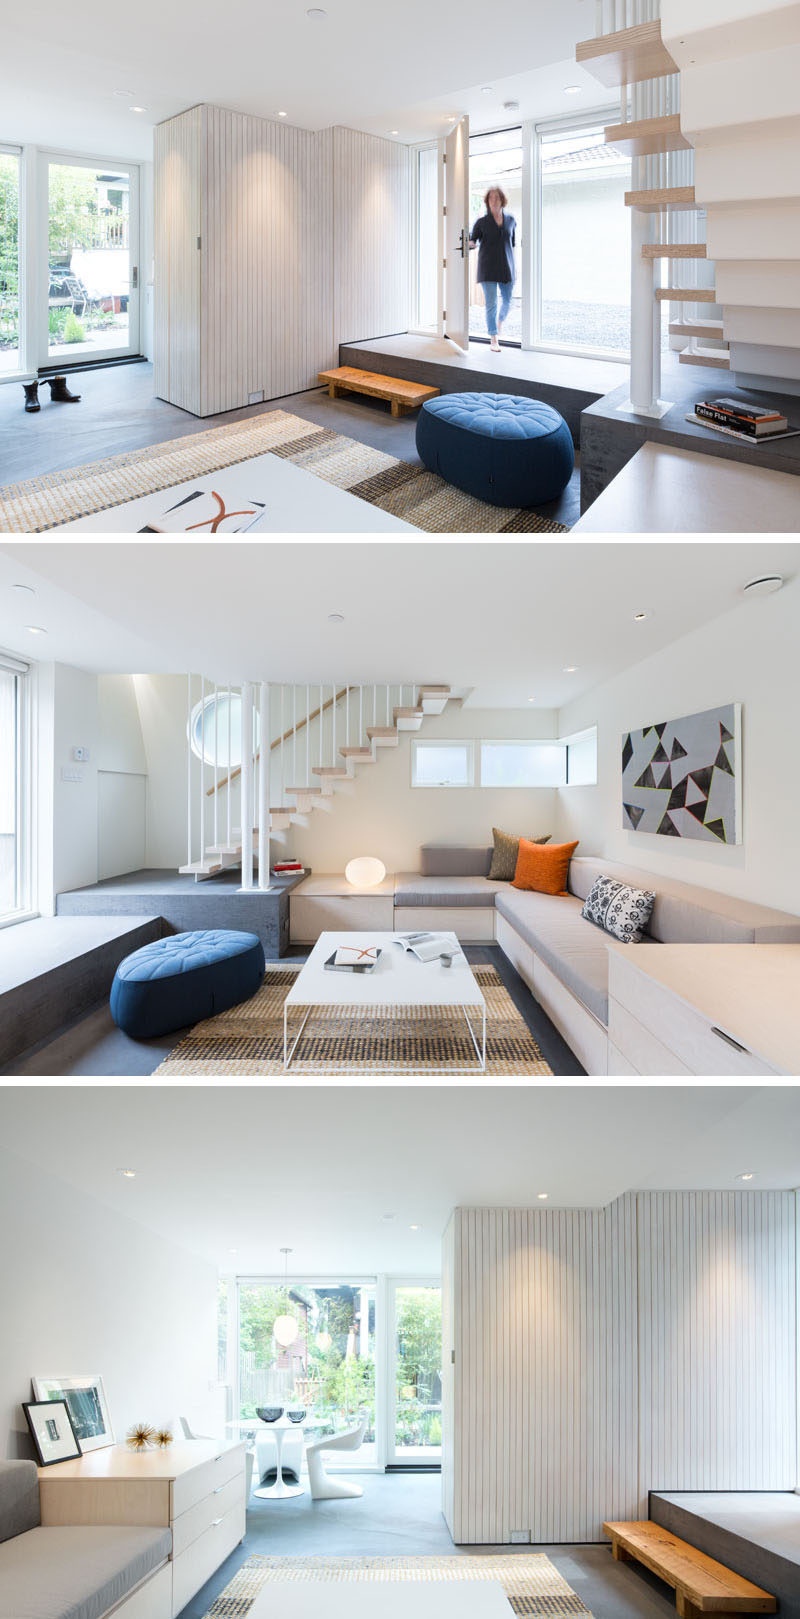 Entering this modern laneway house, there's a step down into the living room. Minimal custom designed furniture and bright white walls make the small space feel larger. #LanewayHouse #SmallLiving #LivingRoom